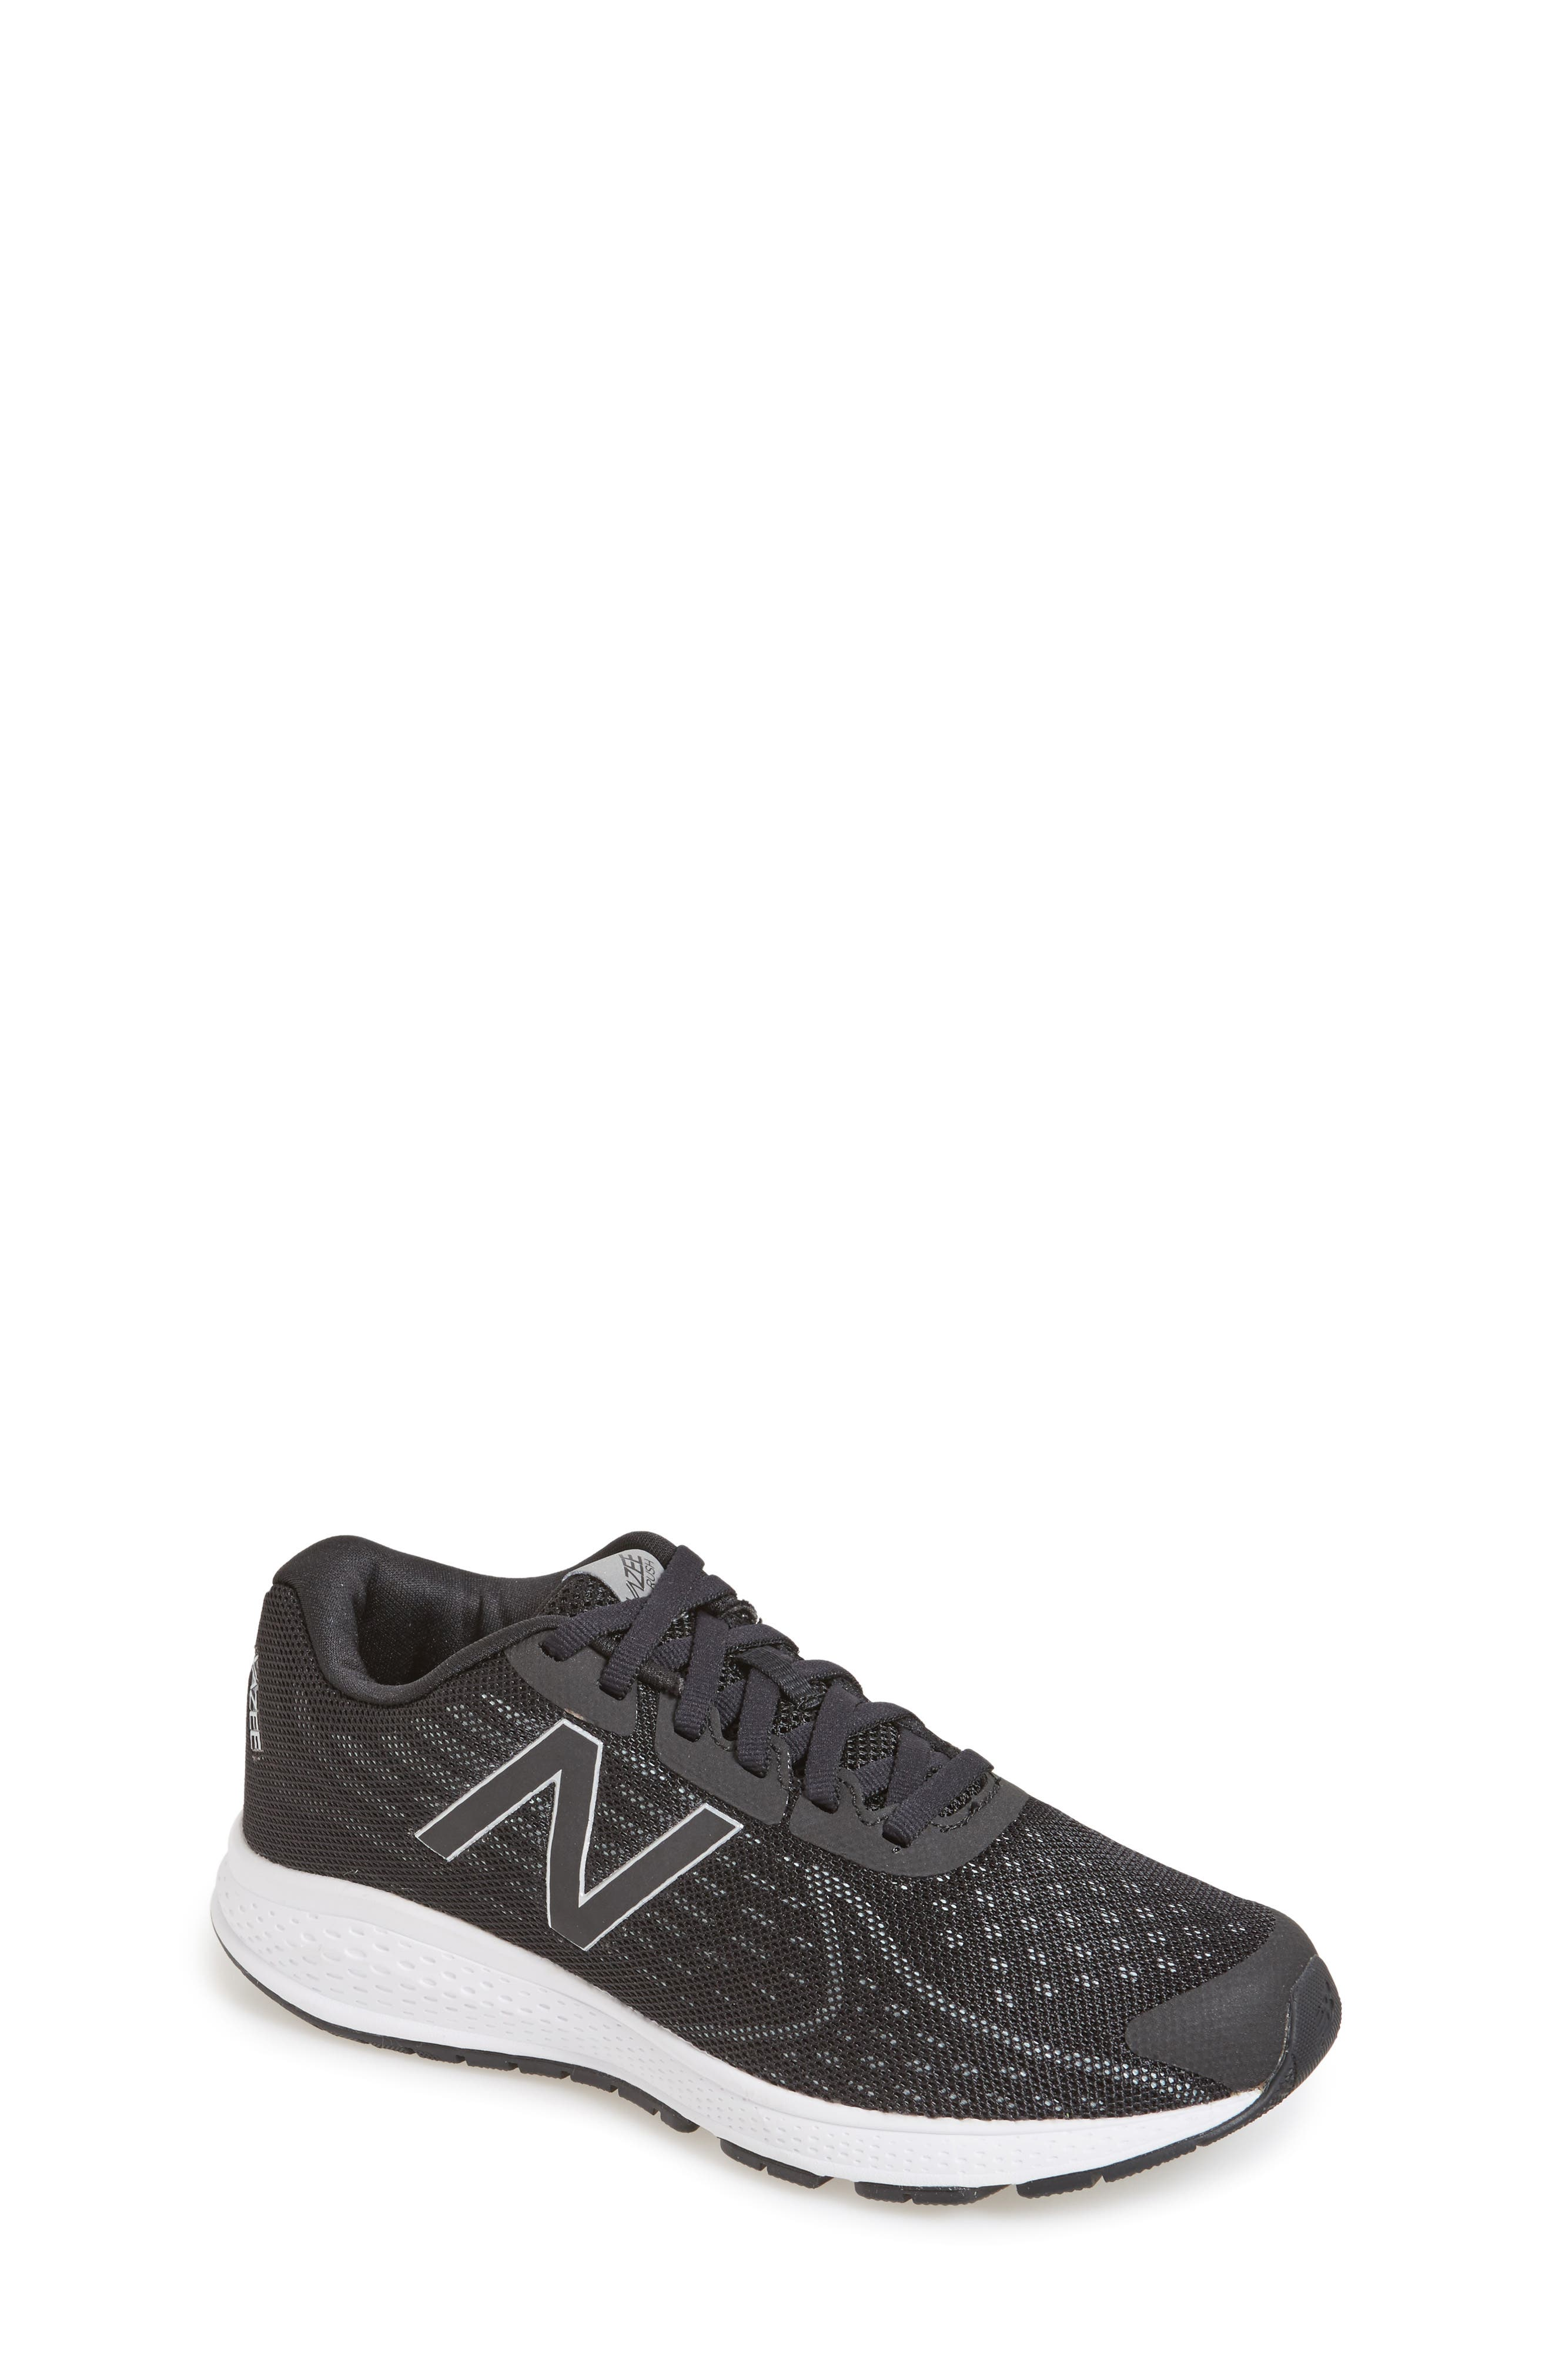 New Balance Vazee Rush Sneaker (Toddler, Little Kid & Big Kid)